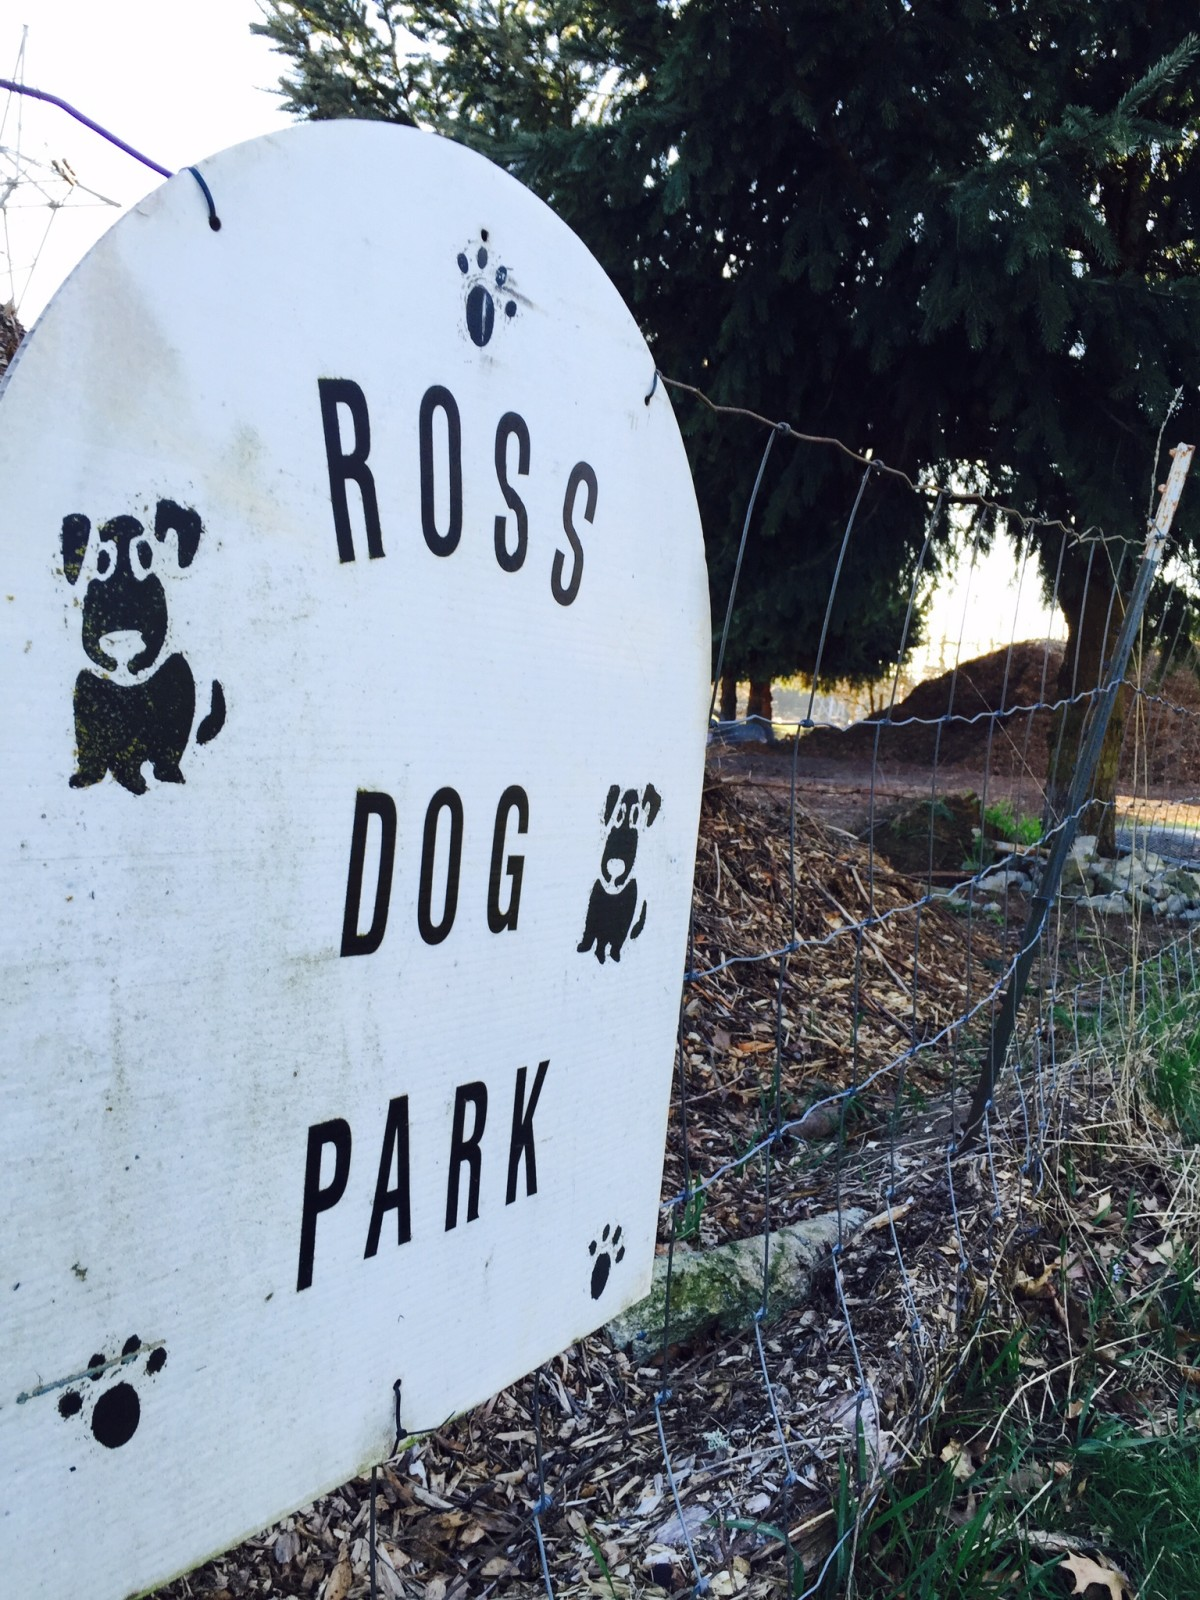 Sign for Ross Dog park.